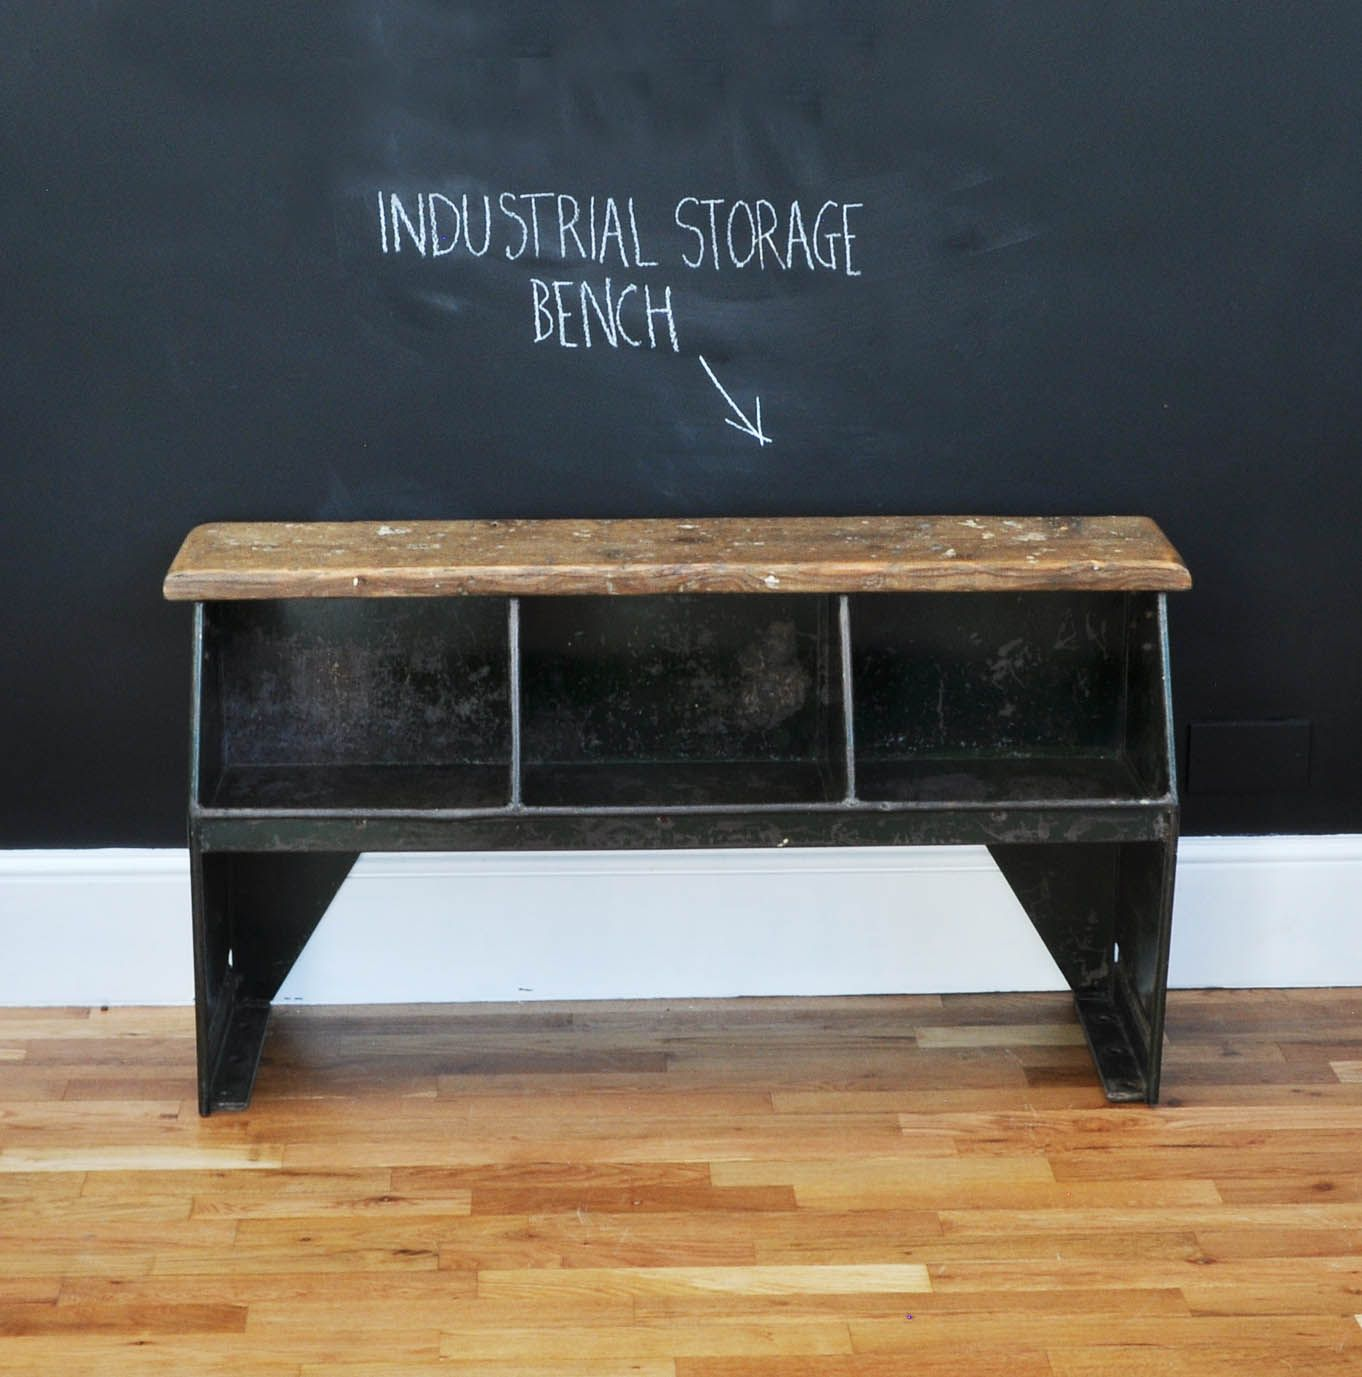 Vintage bootroom storage bench bring it on home recycleupcycle